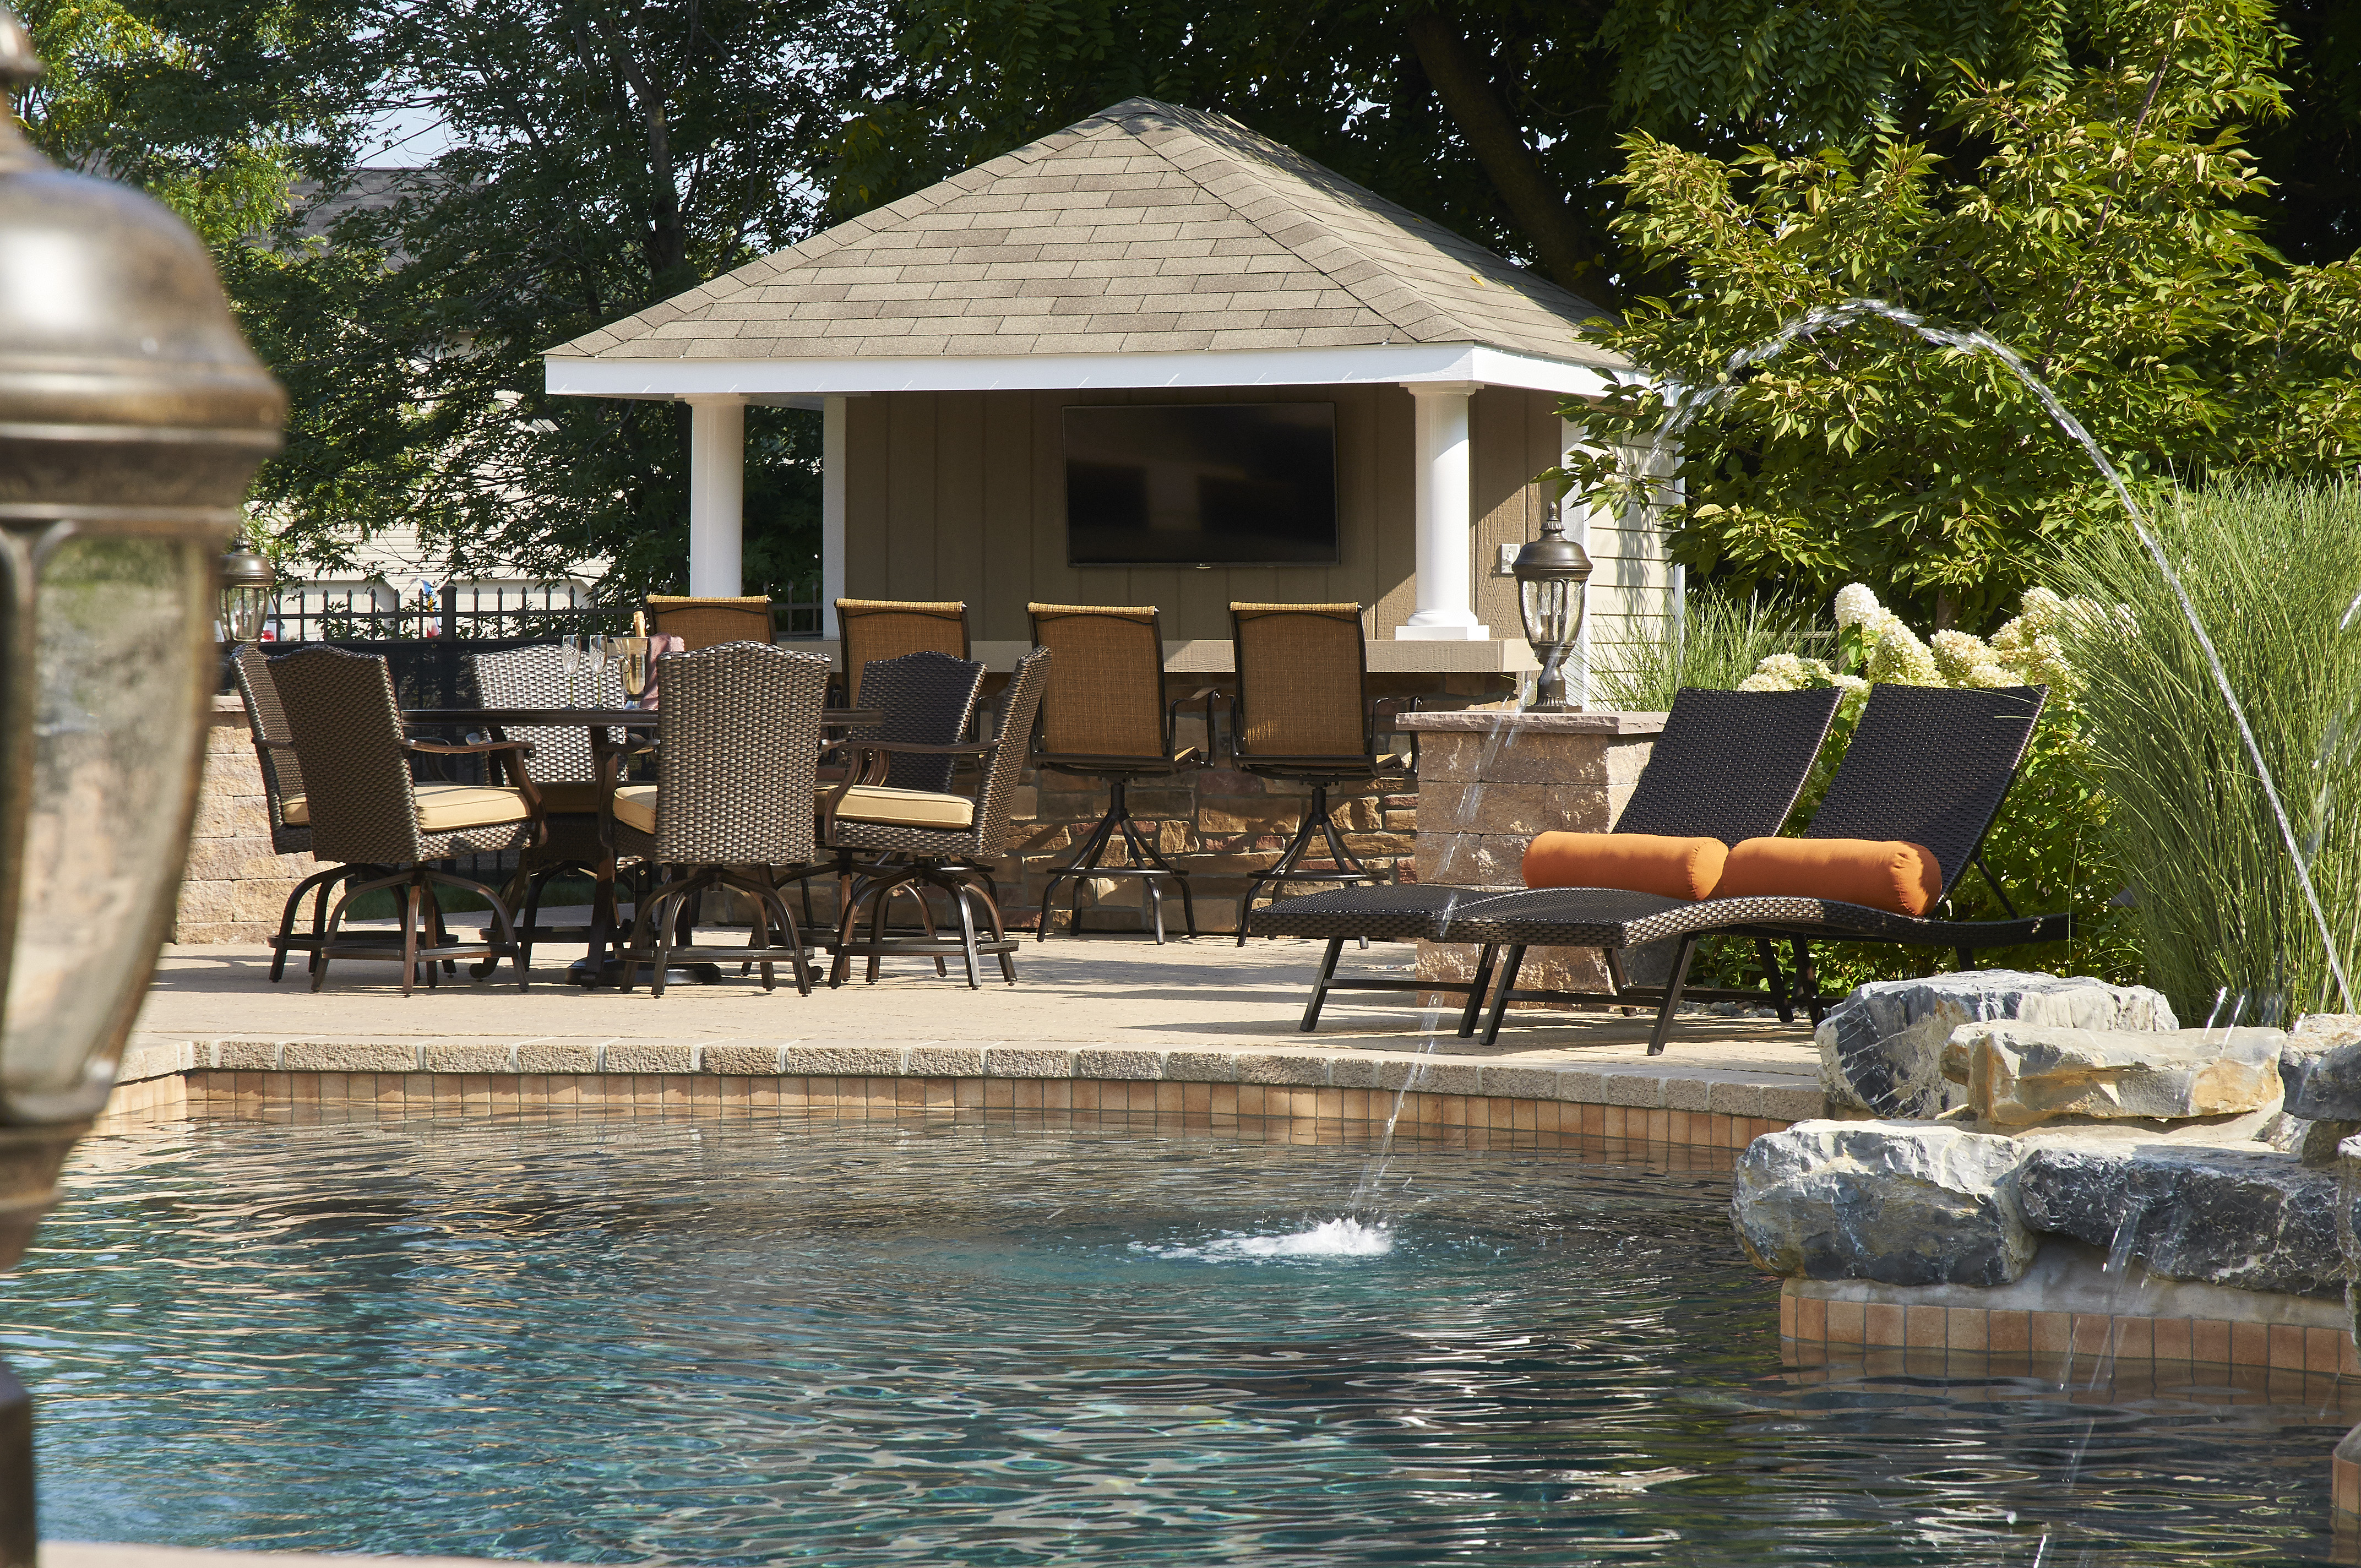 pool houses cabanas pool sheds pool side bars homestead structures rh homesteadstructures com backyard pool house and bar backyard pool house sheds kits